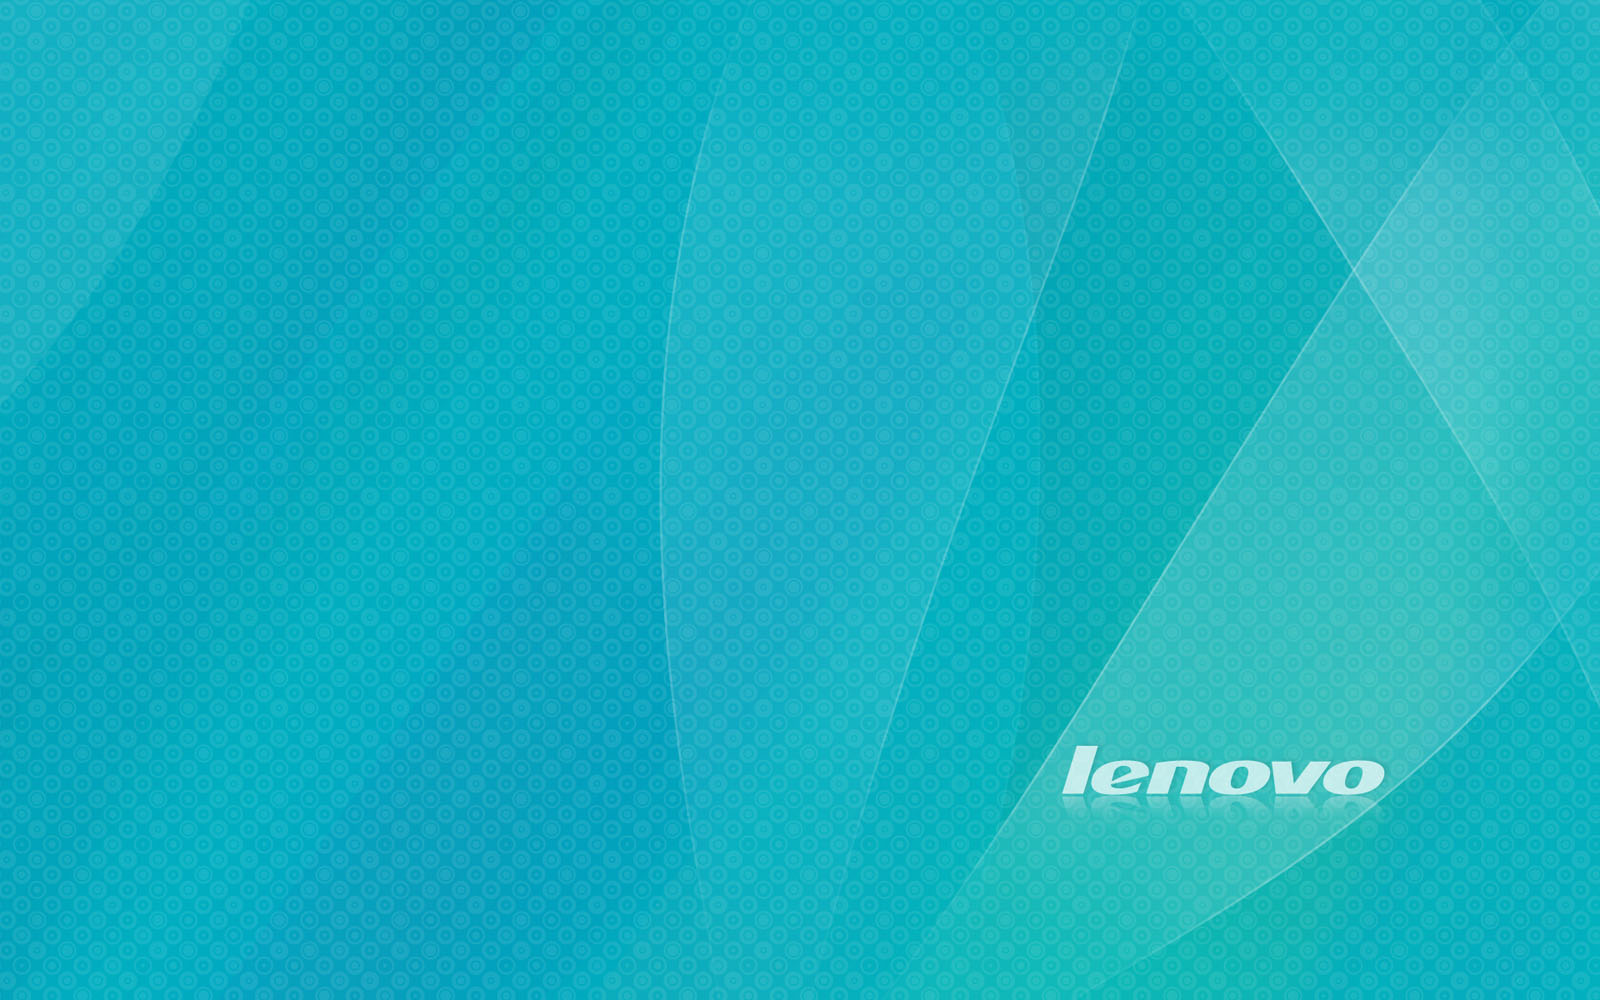 Related pictures lenovo desktop backgrounds pic 15